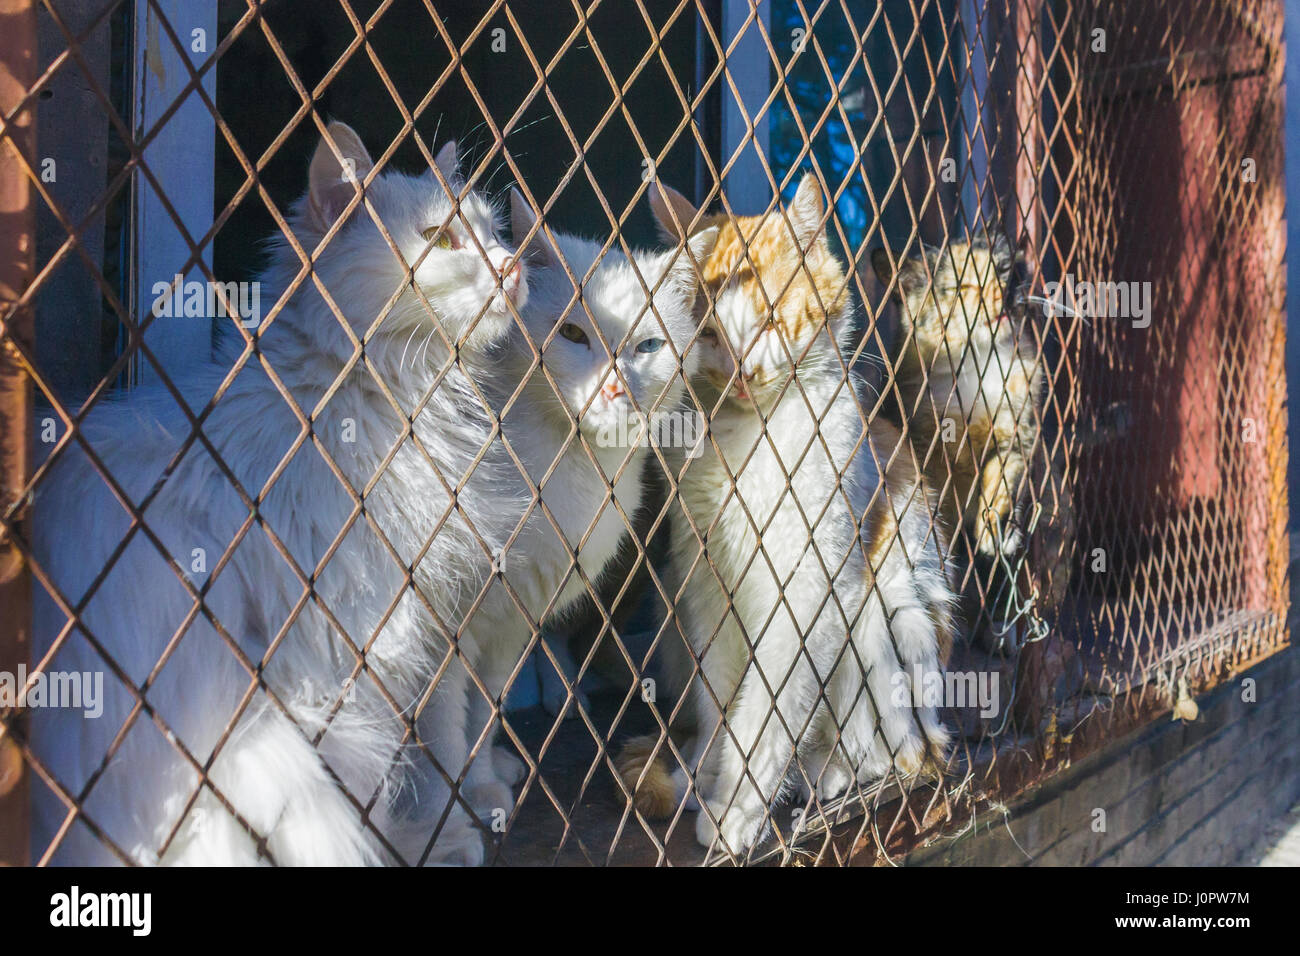 Wire Cages Trapping Cats Data Wiring Plumbingwarehousecom Delta Bathroom Faucet Parts For Model 2540 Trap And Is Stuck In A Steel Netting Cage Hoping Stock Rh Alamy Com Bobcat Bait Live Animal Traps